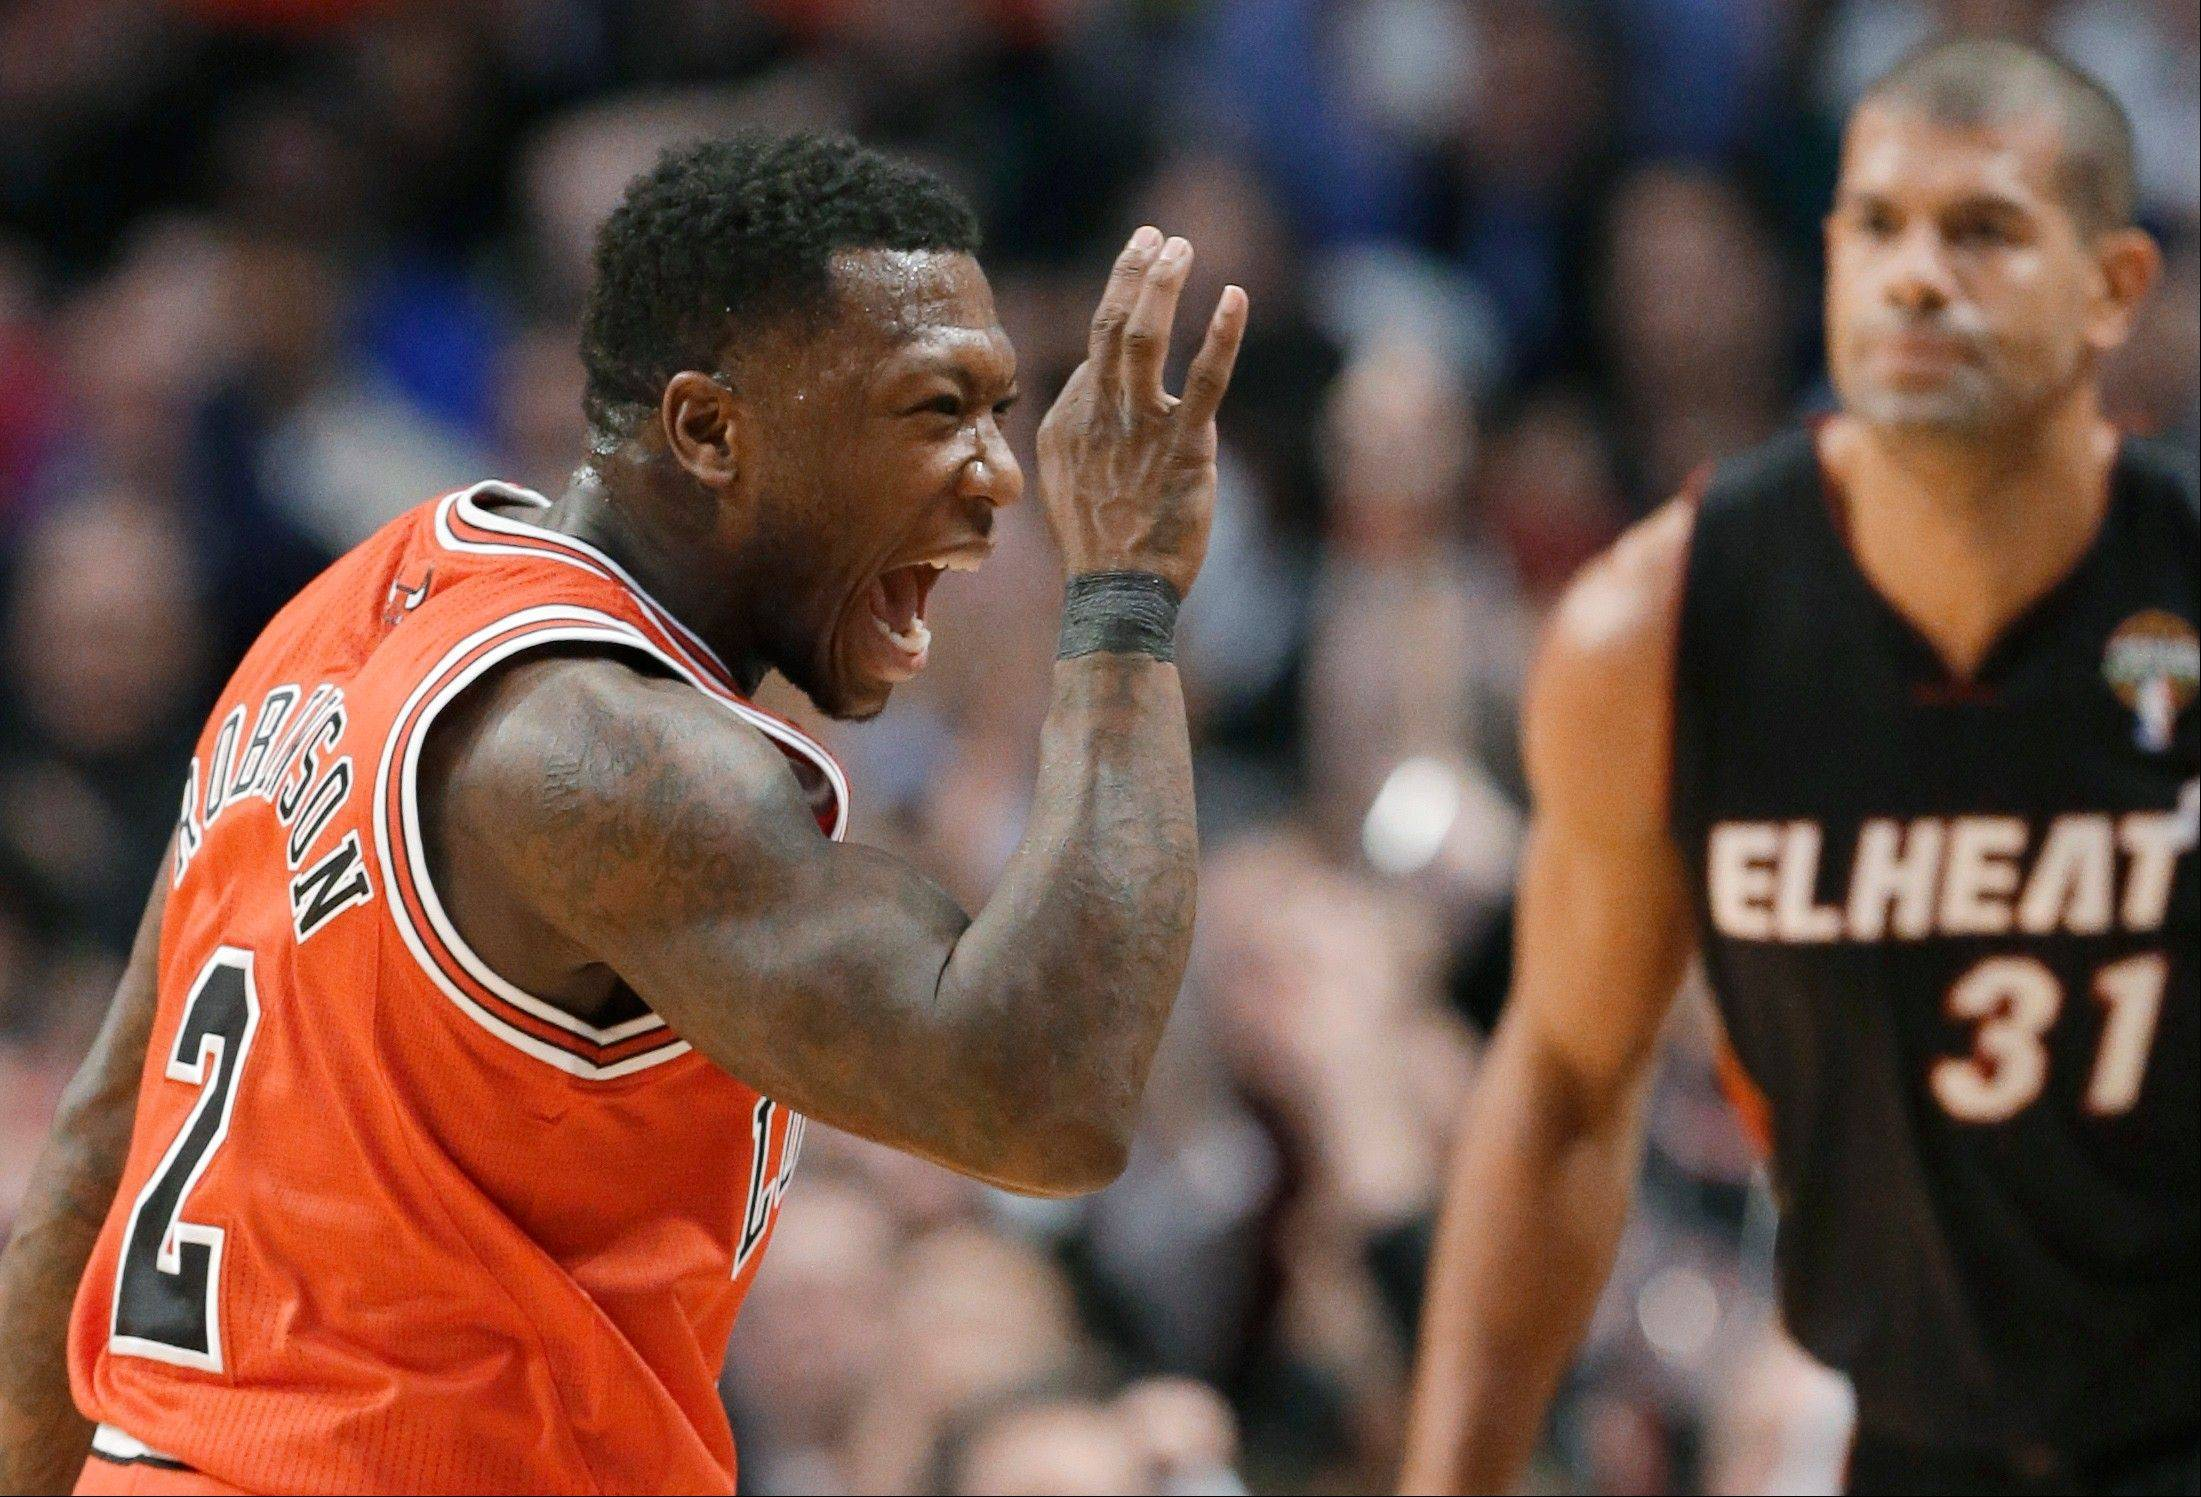 Chicago Bulls guard Nate Robinson, left, celebrates a 3-point shot, as Miami Heat forward Shane Battier watches Wednesday night at the United Center.